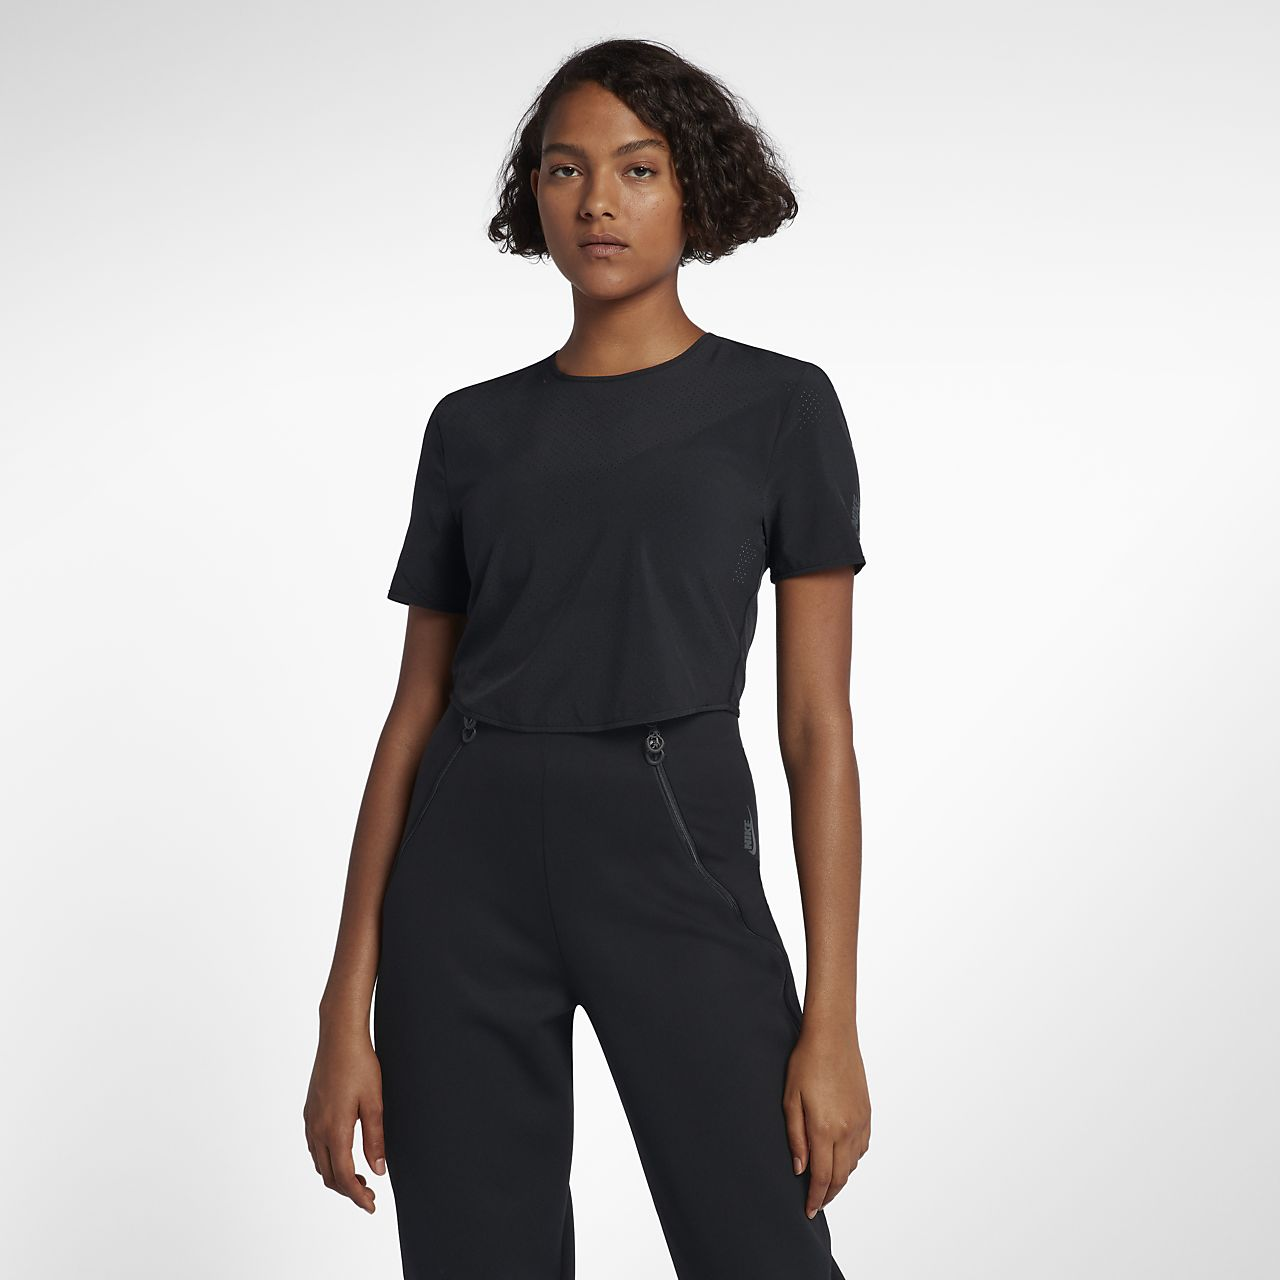 Nike City Ready Women's Top